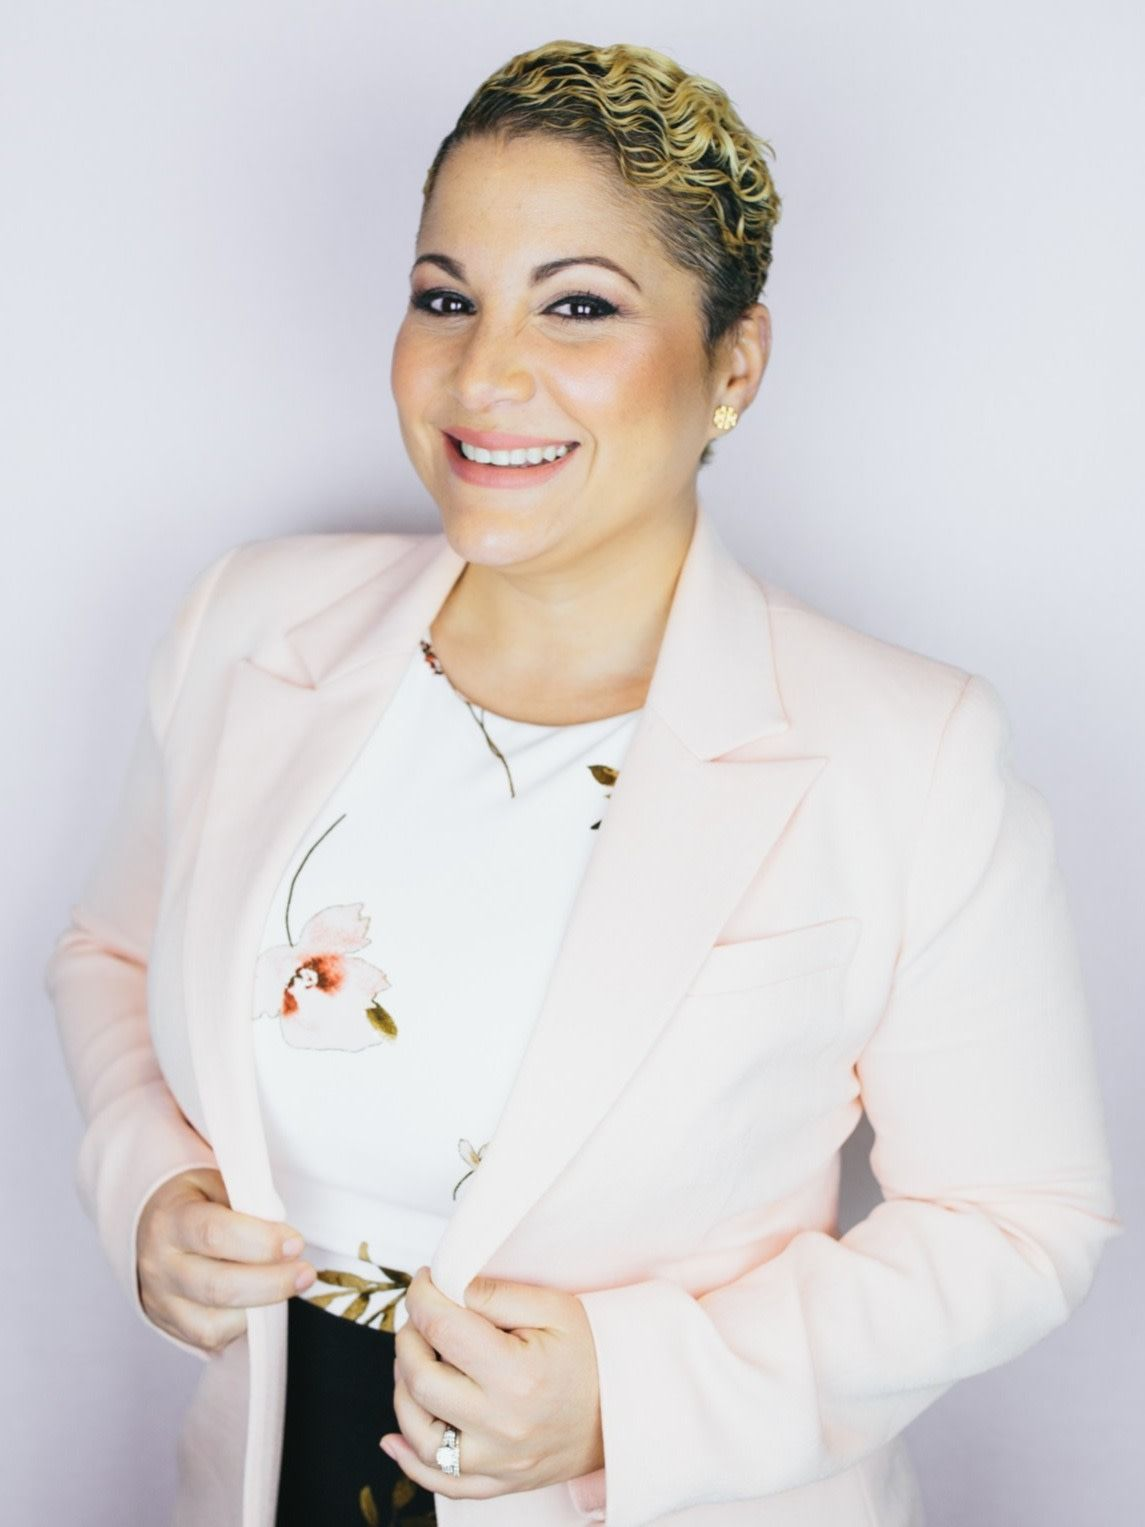 Diversity and Inclusion Leader Rosa Nuñez Joins National Board of Directors at INROADS, INROADS